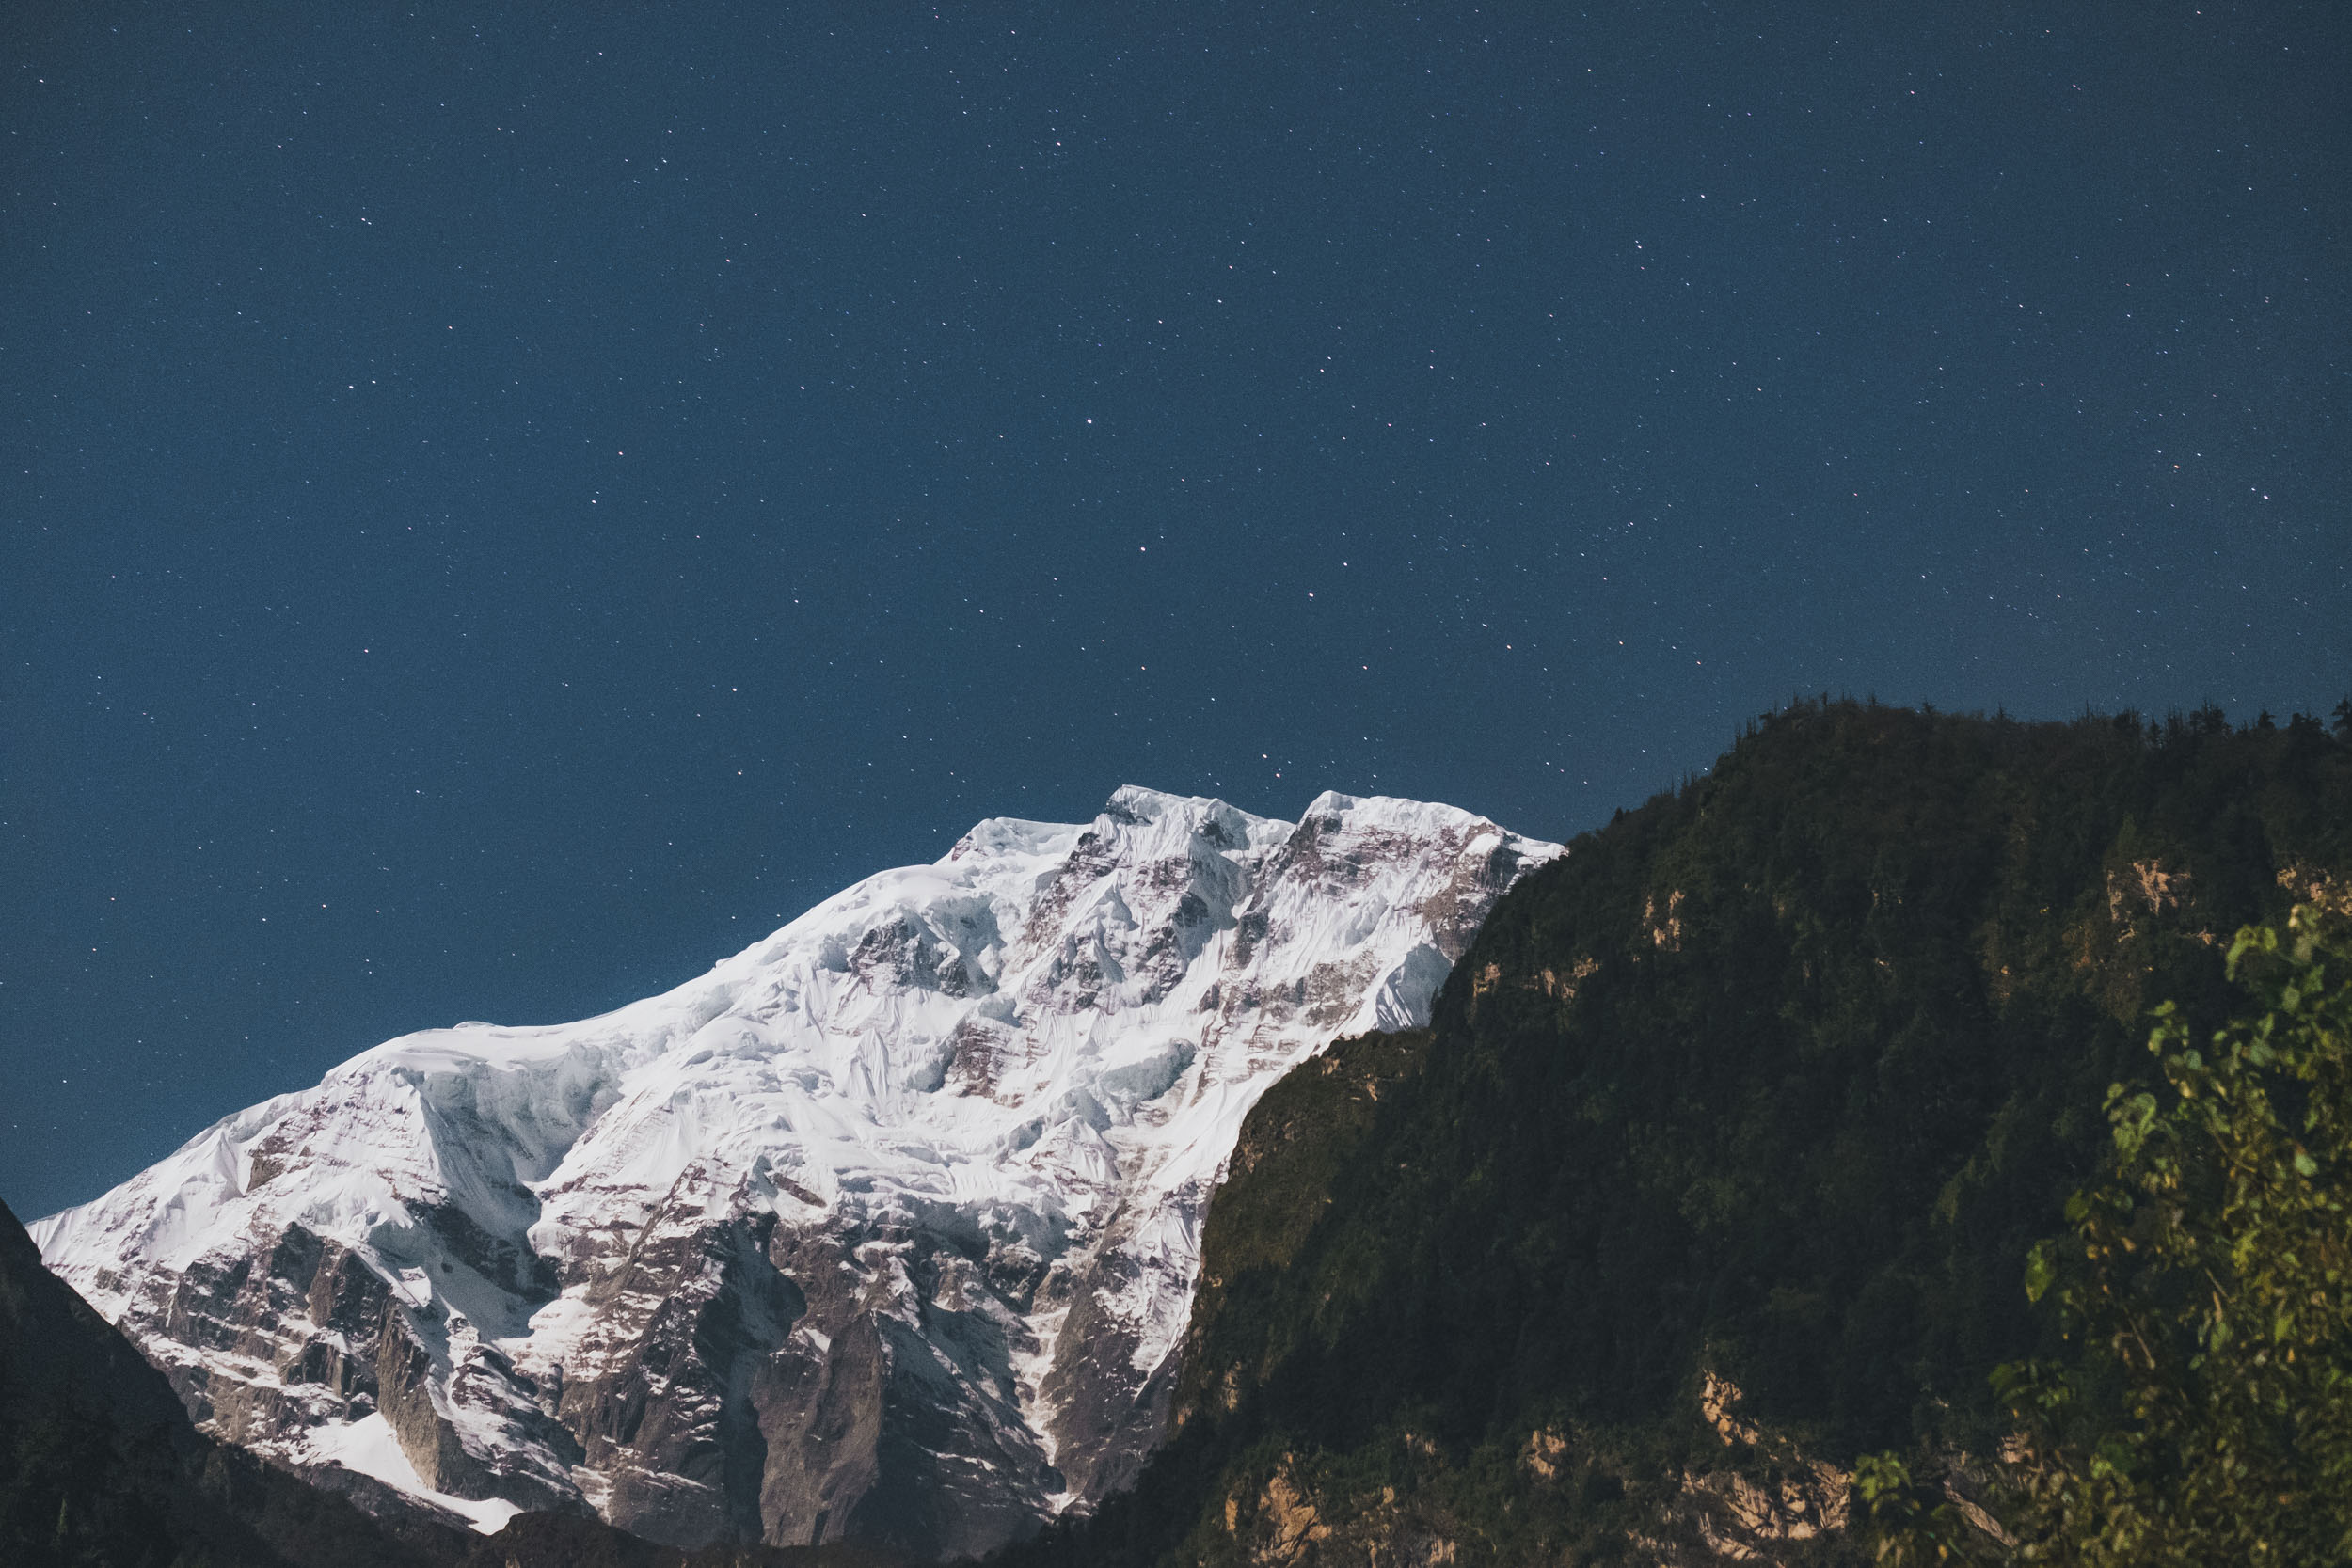 Annapurna II from Chame at Night, full moon on lighting from the left.